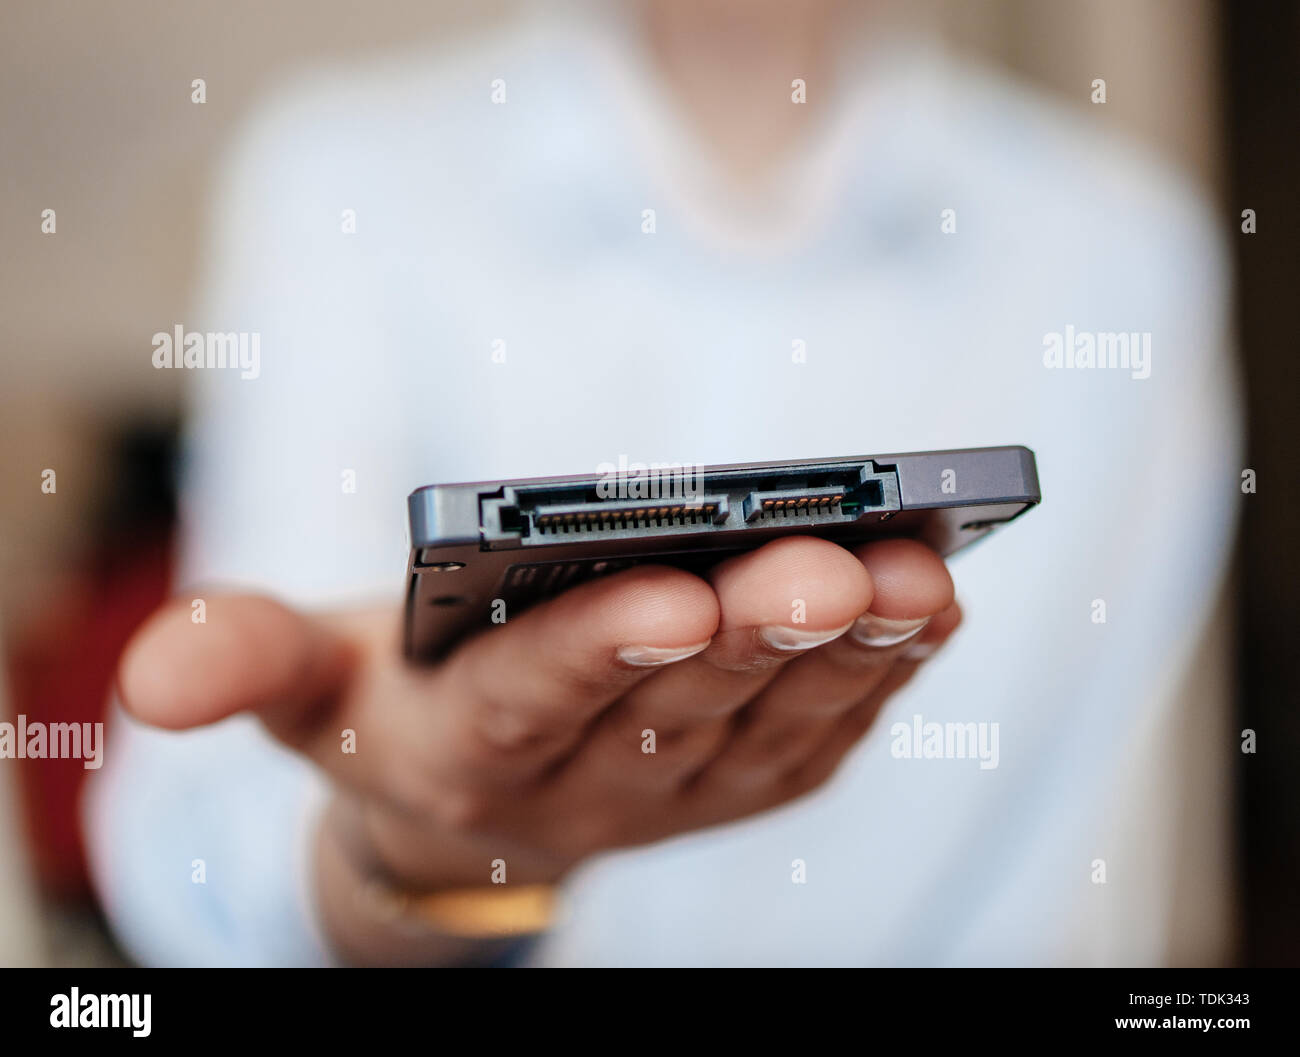 Woman presenting demonstrating holding in palm new small fast SSD 4tb 10tb computer disk drive with SATA connectivity - Stock Image